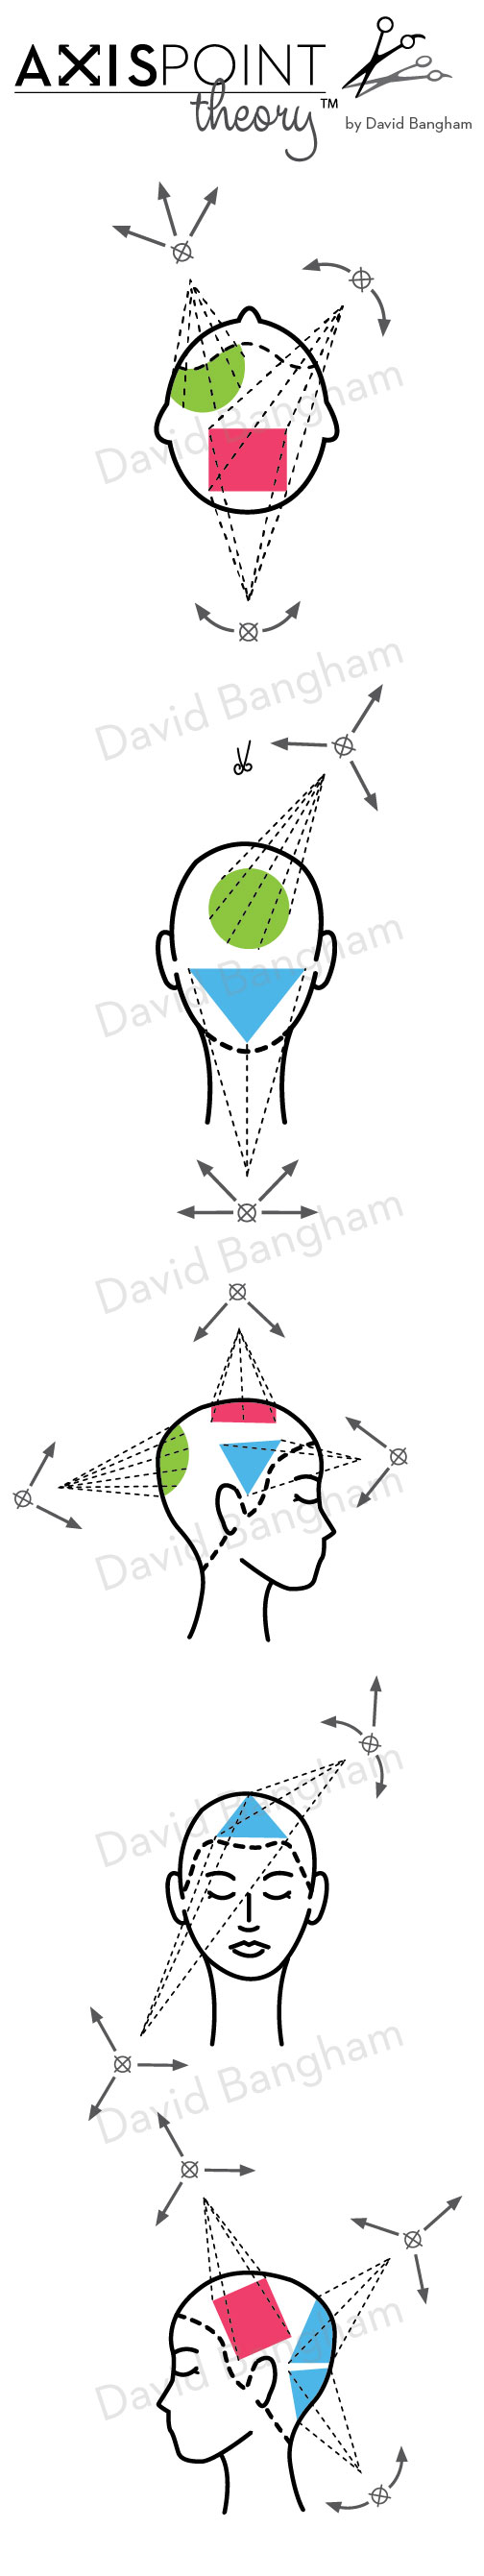 AXIS POINT cutting diagrams by David Bangham : tap or click to enlarge